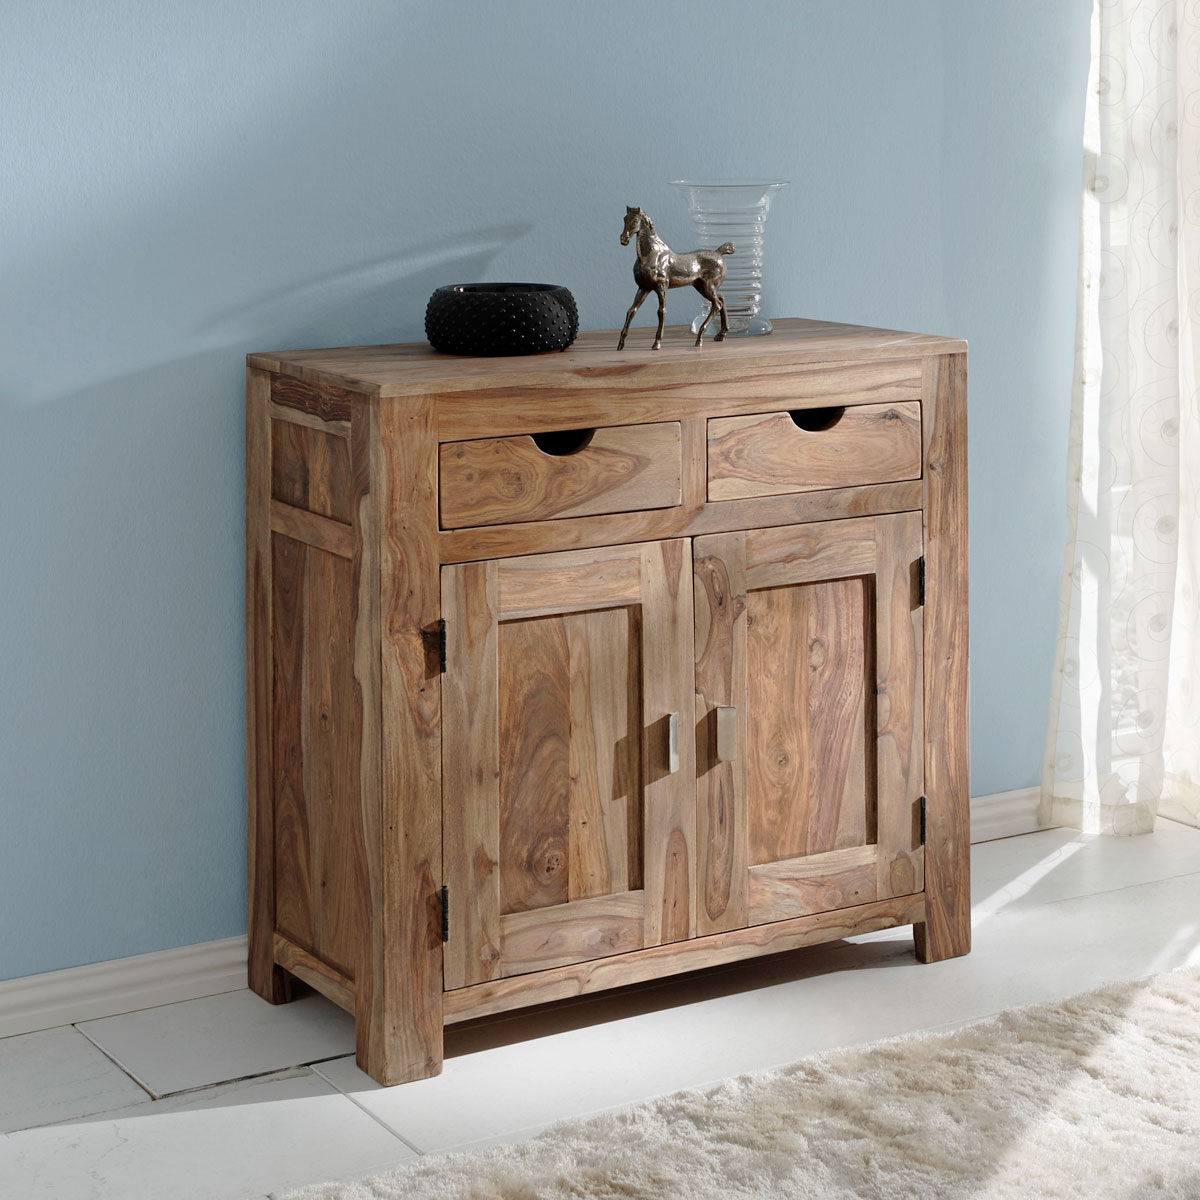 Baltimore Walnuss Kommode Sideboard Baltimore Walnuss Ihr Traumhaus Ideen